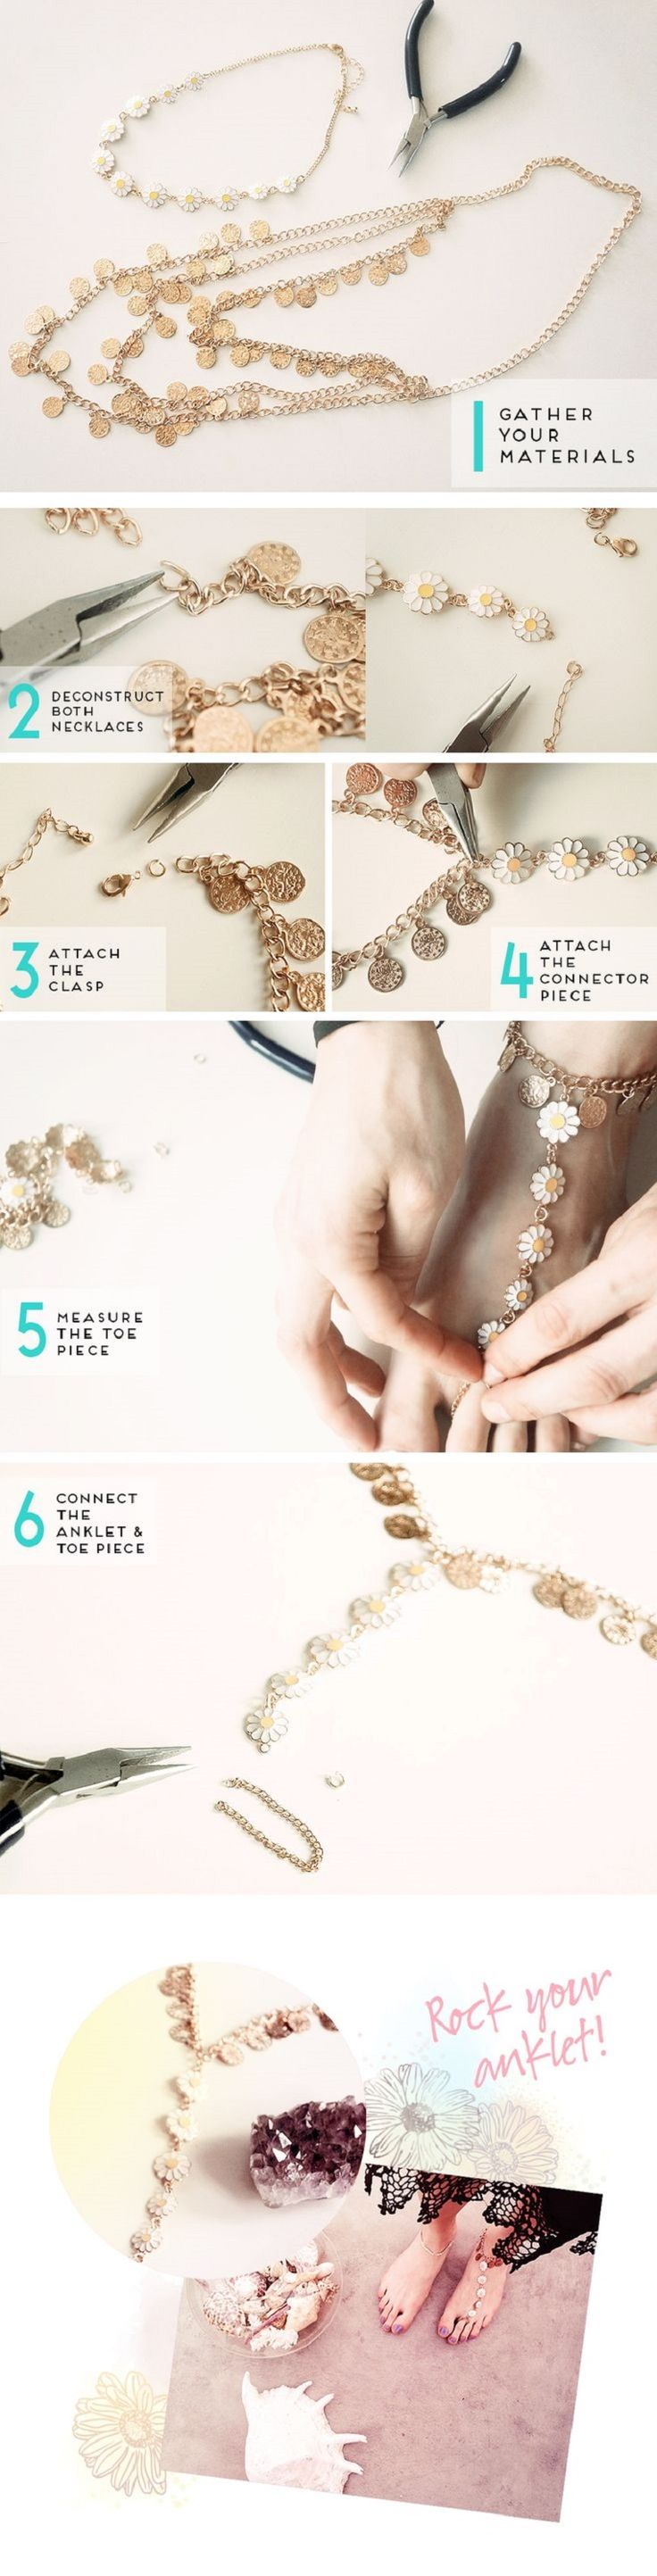 best projects to try images on pinterest great ideas awesome